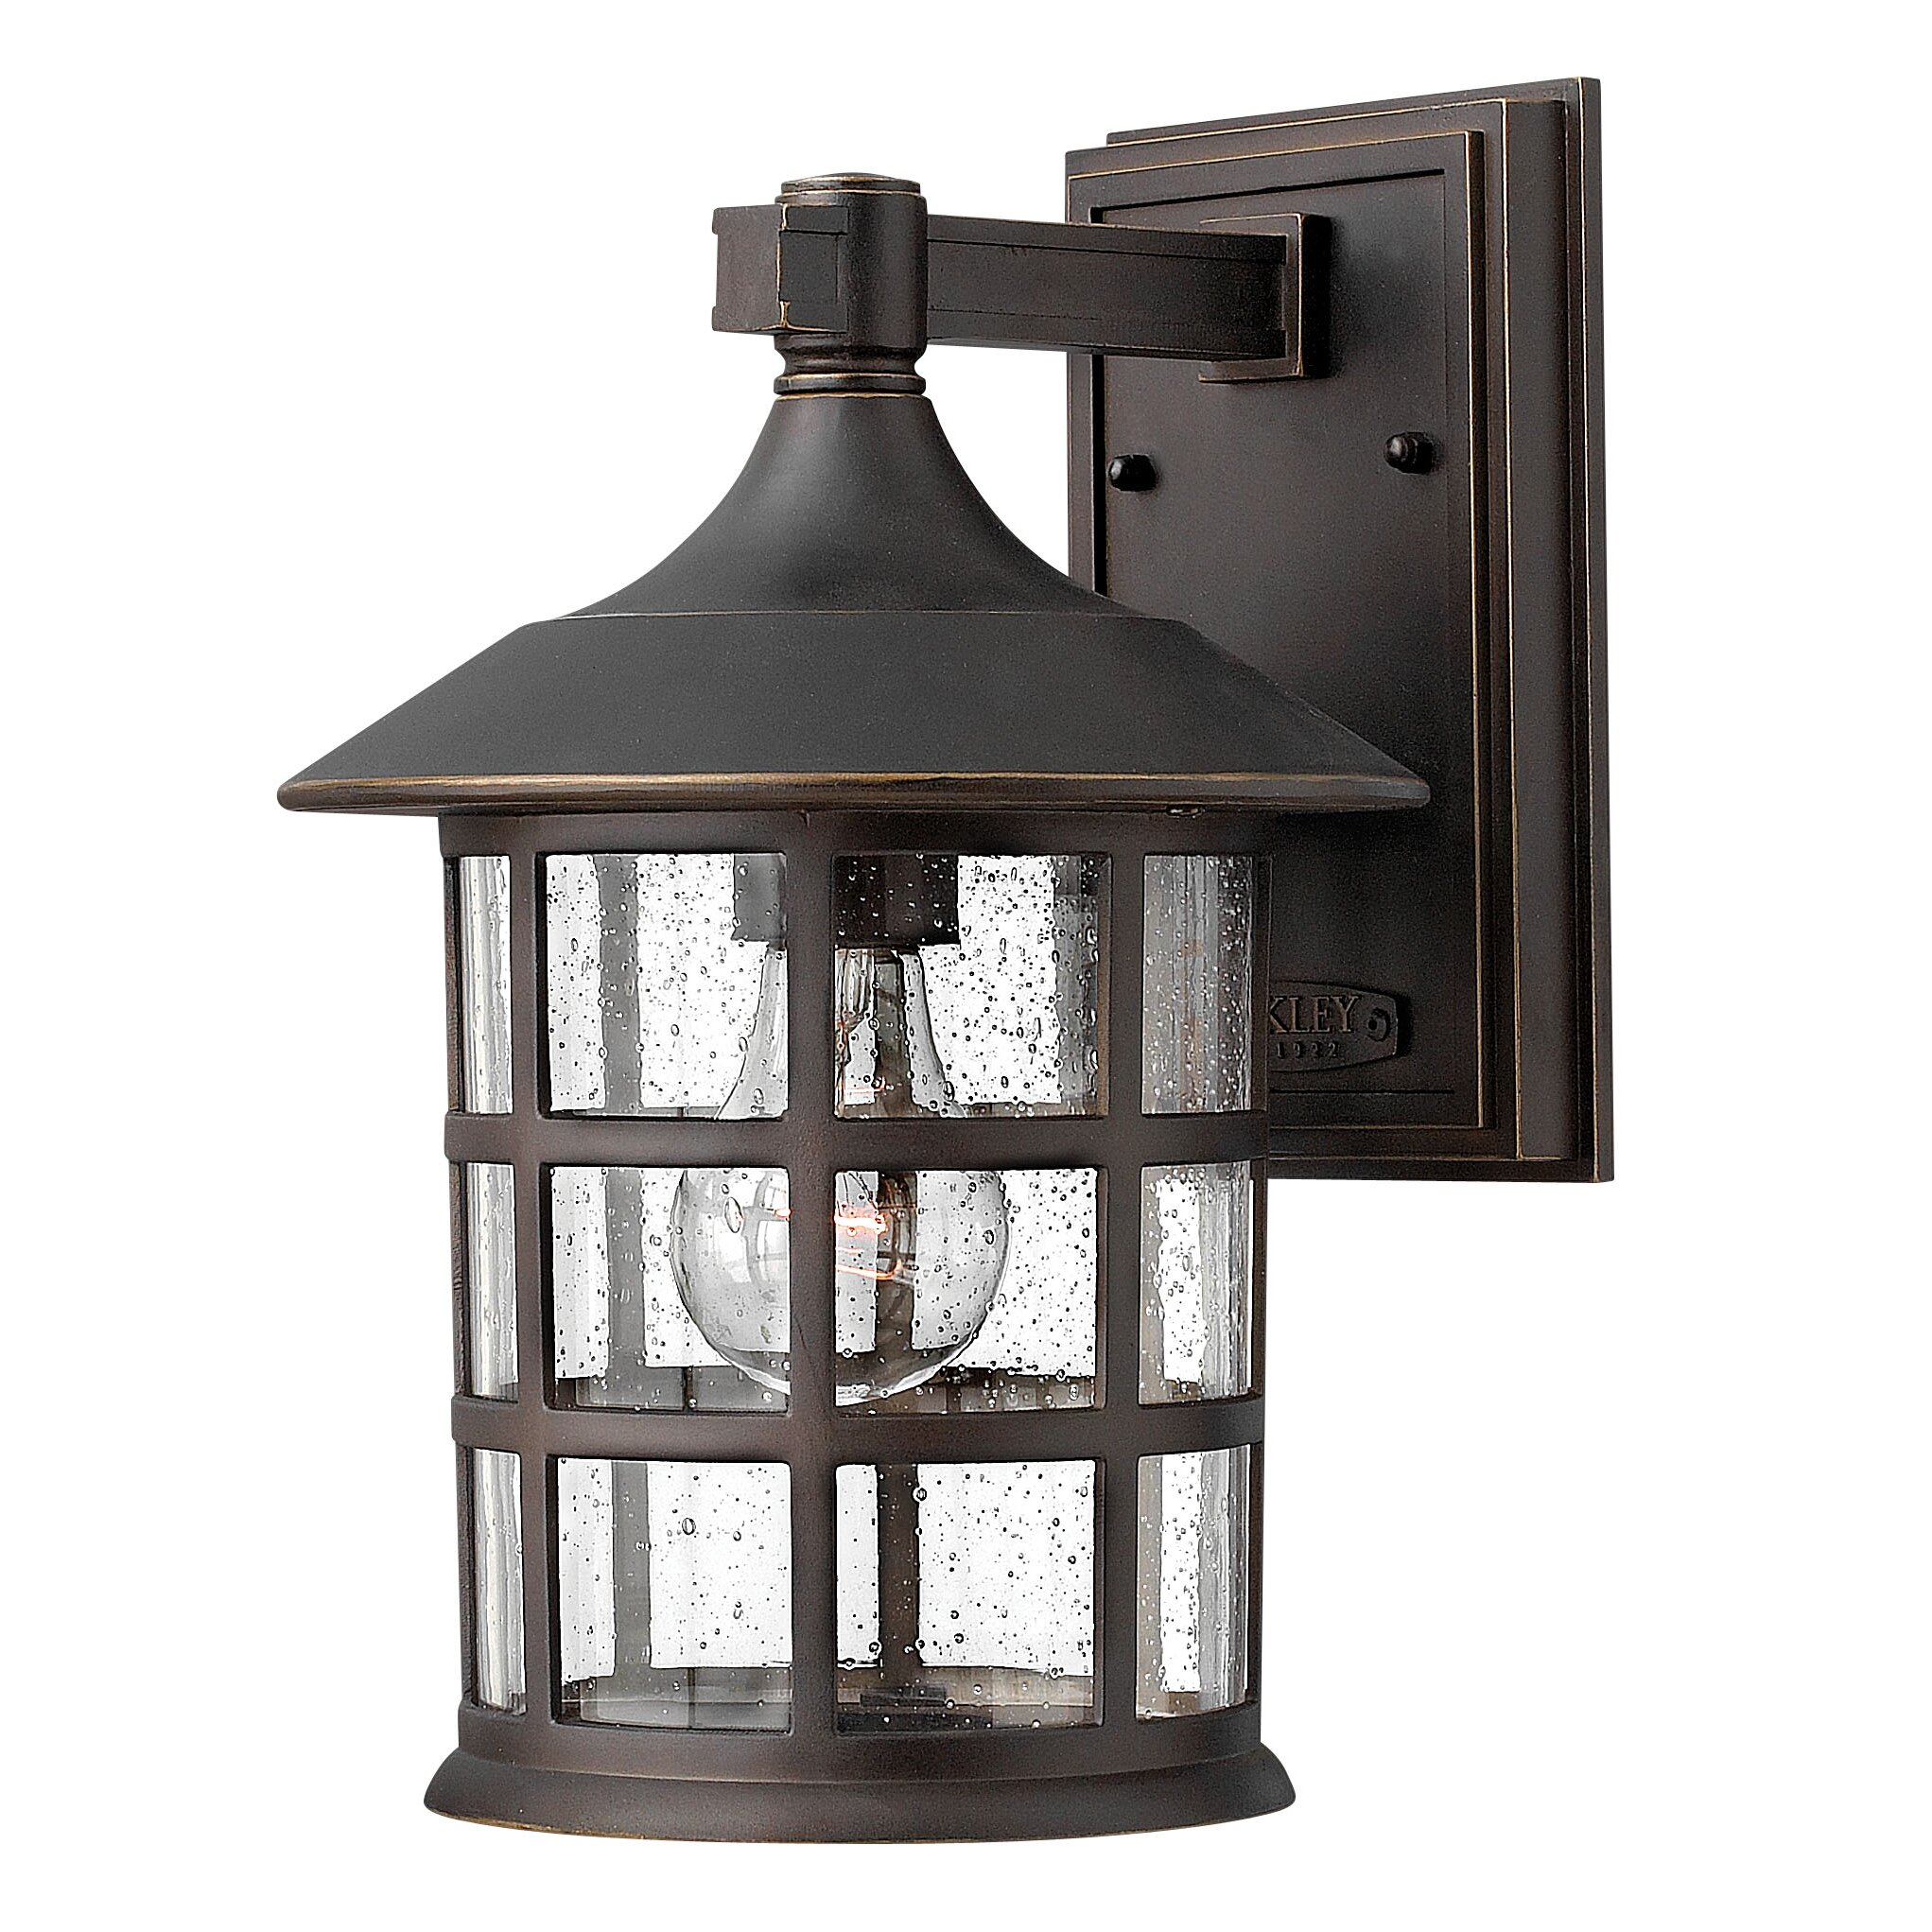 Hinkley Lighting Freeport 1 Light Outdoor Wall Lantern  : Freeport2BWall2BLantern from www.wayfair.com size 2043 x 2043 jpeg 522kB